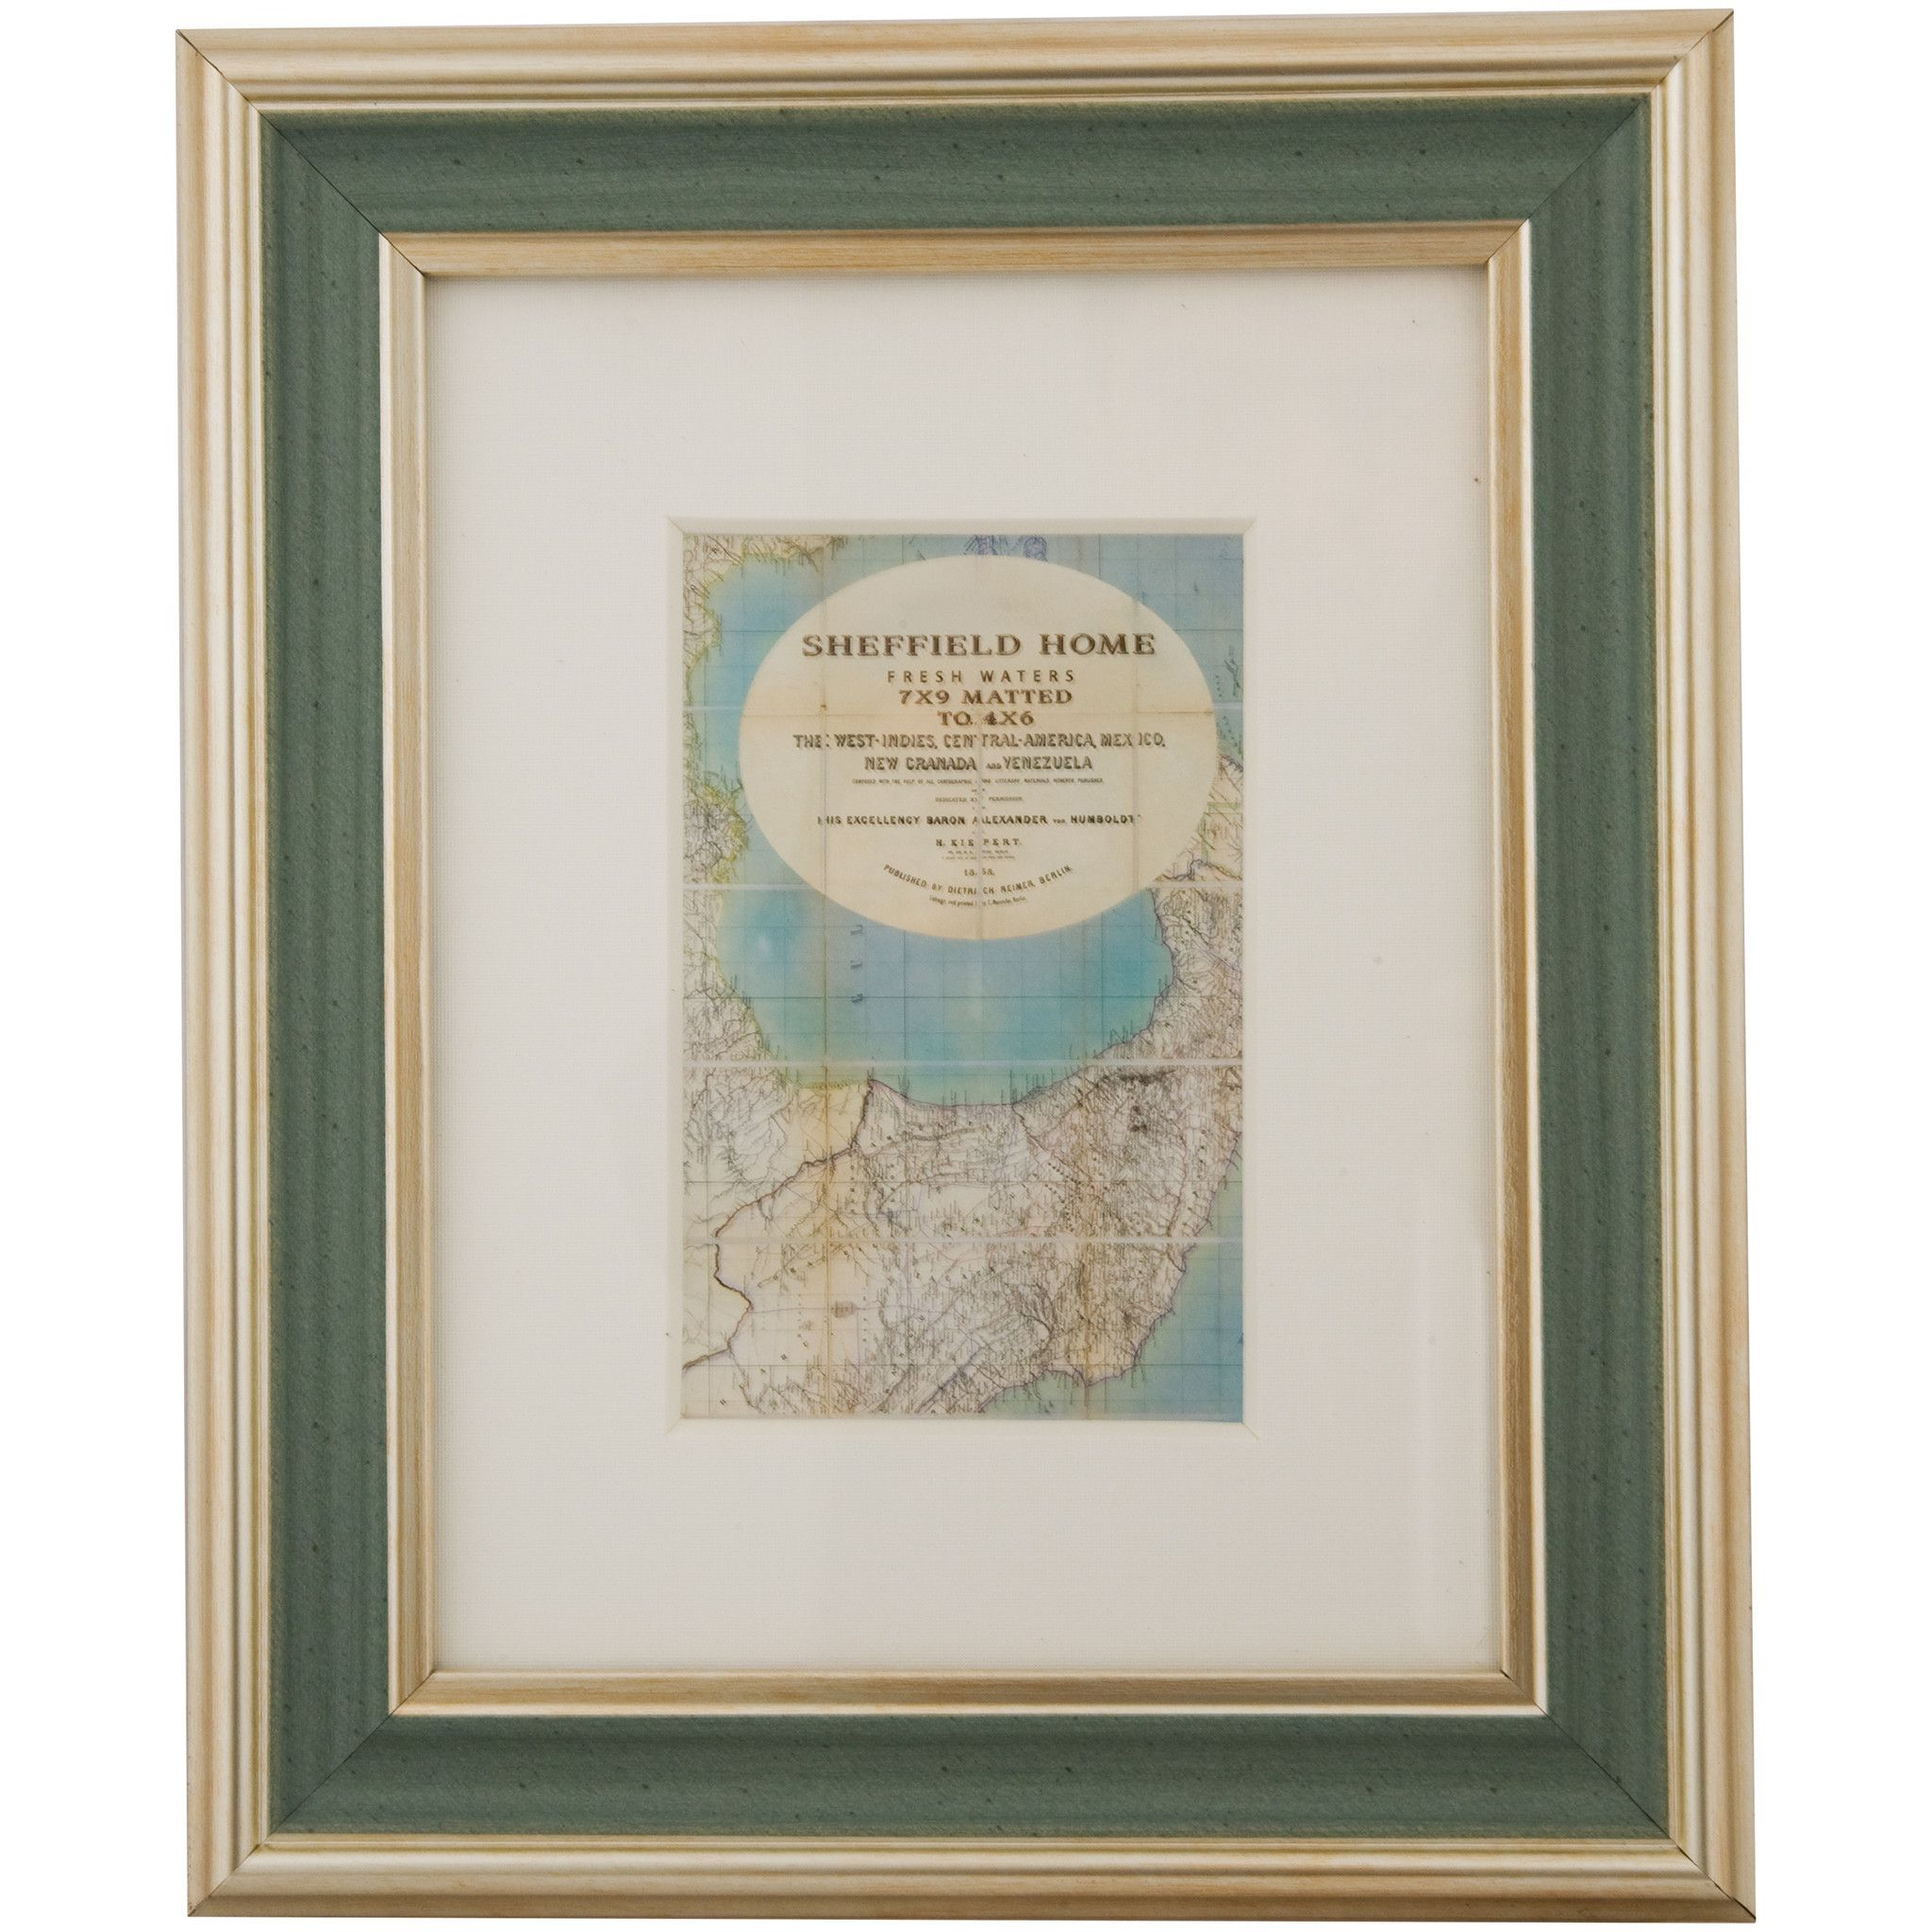 Home interior frames parisian home nantucket mat picture frame  photo frame  products